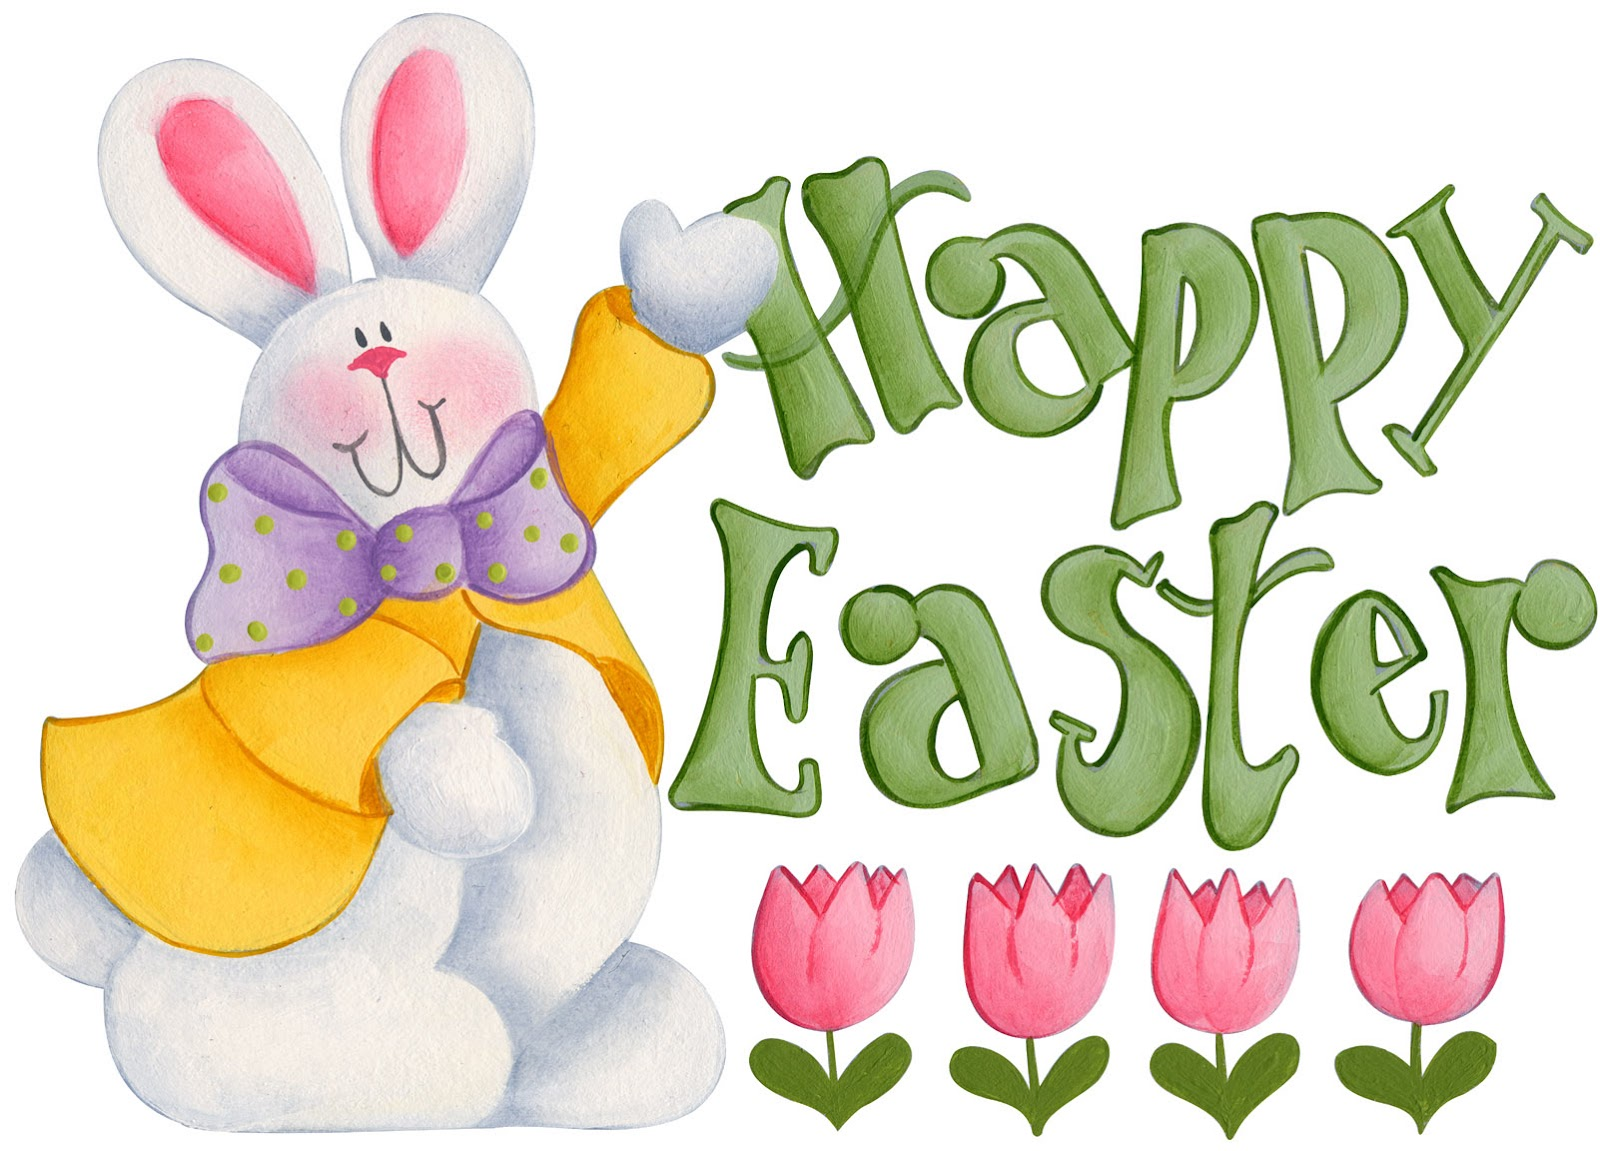 50+ Happy Easter Clipart, Animated, GIF Images, Pictures, Photos Free.